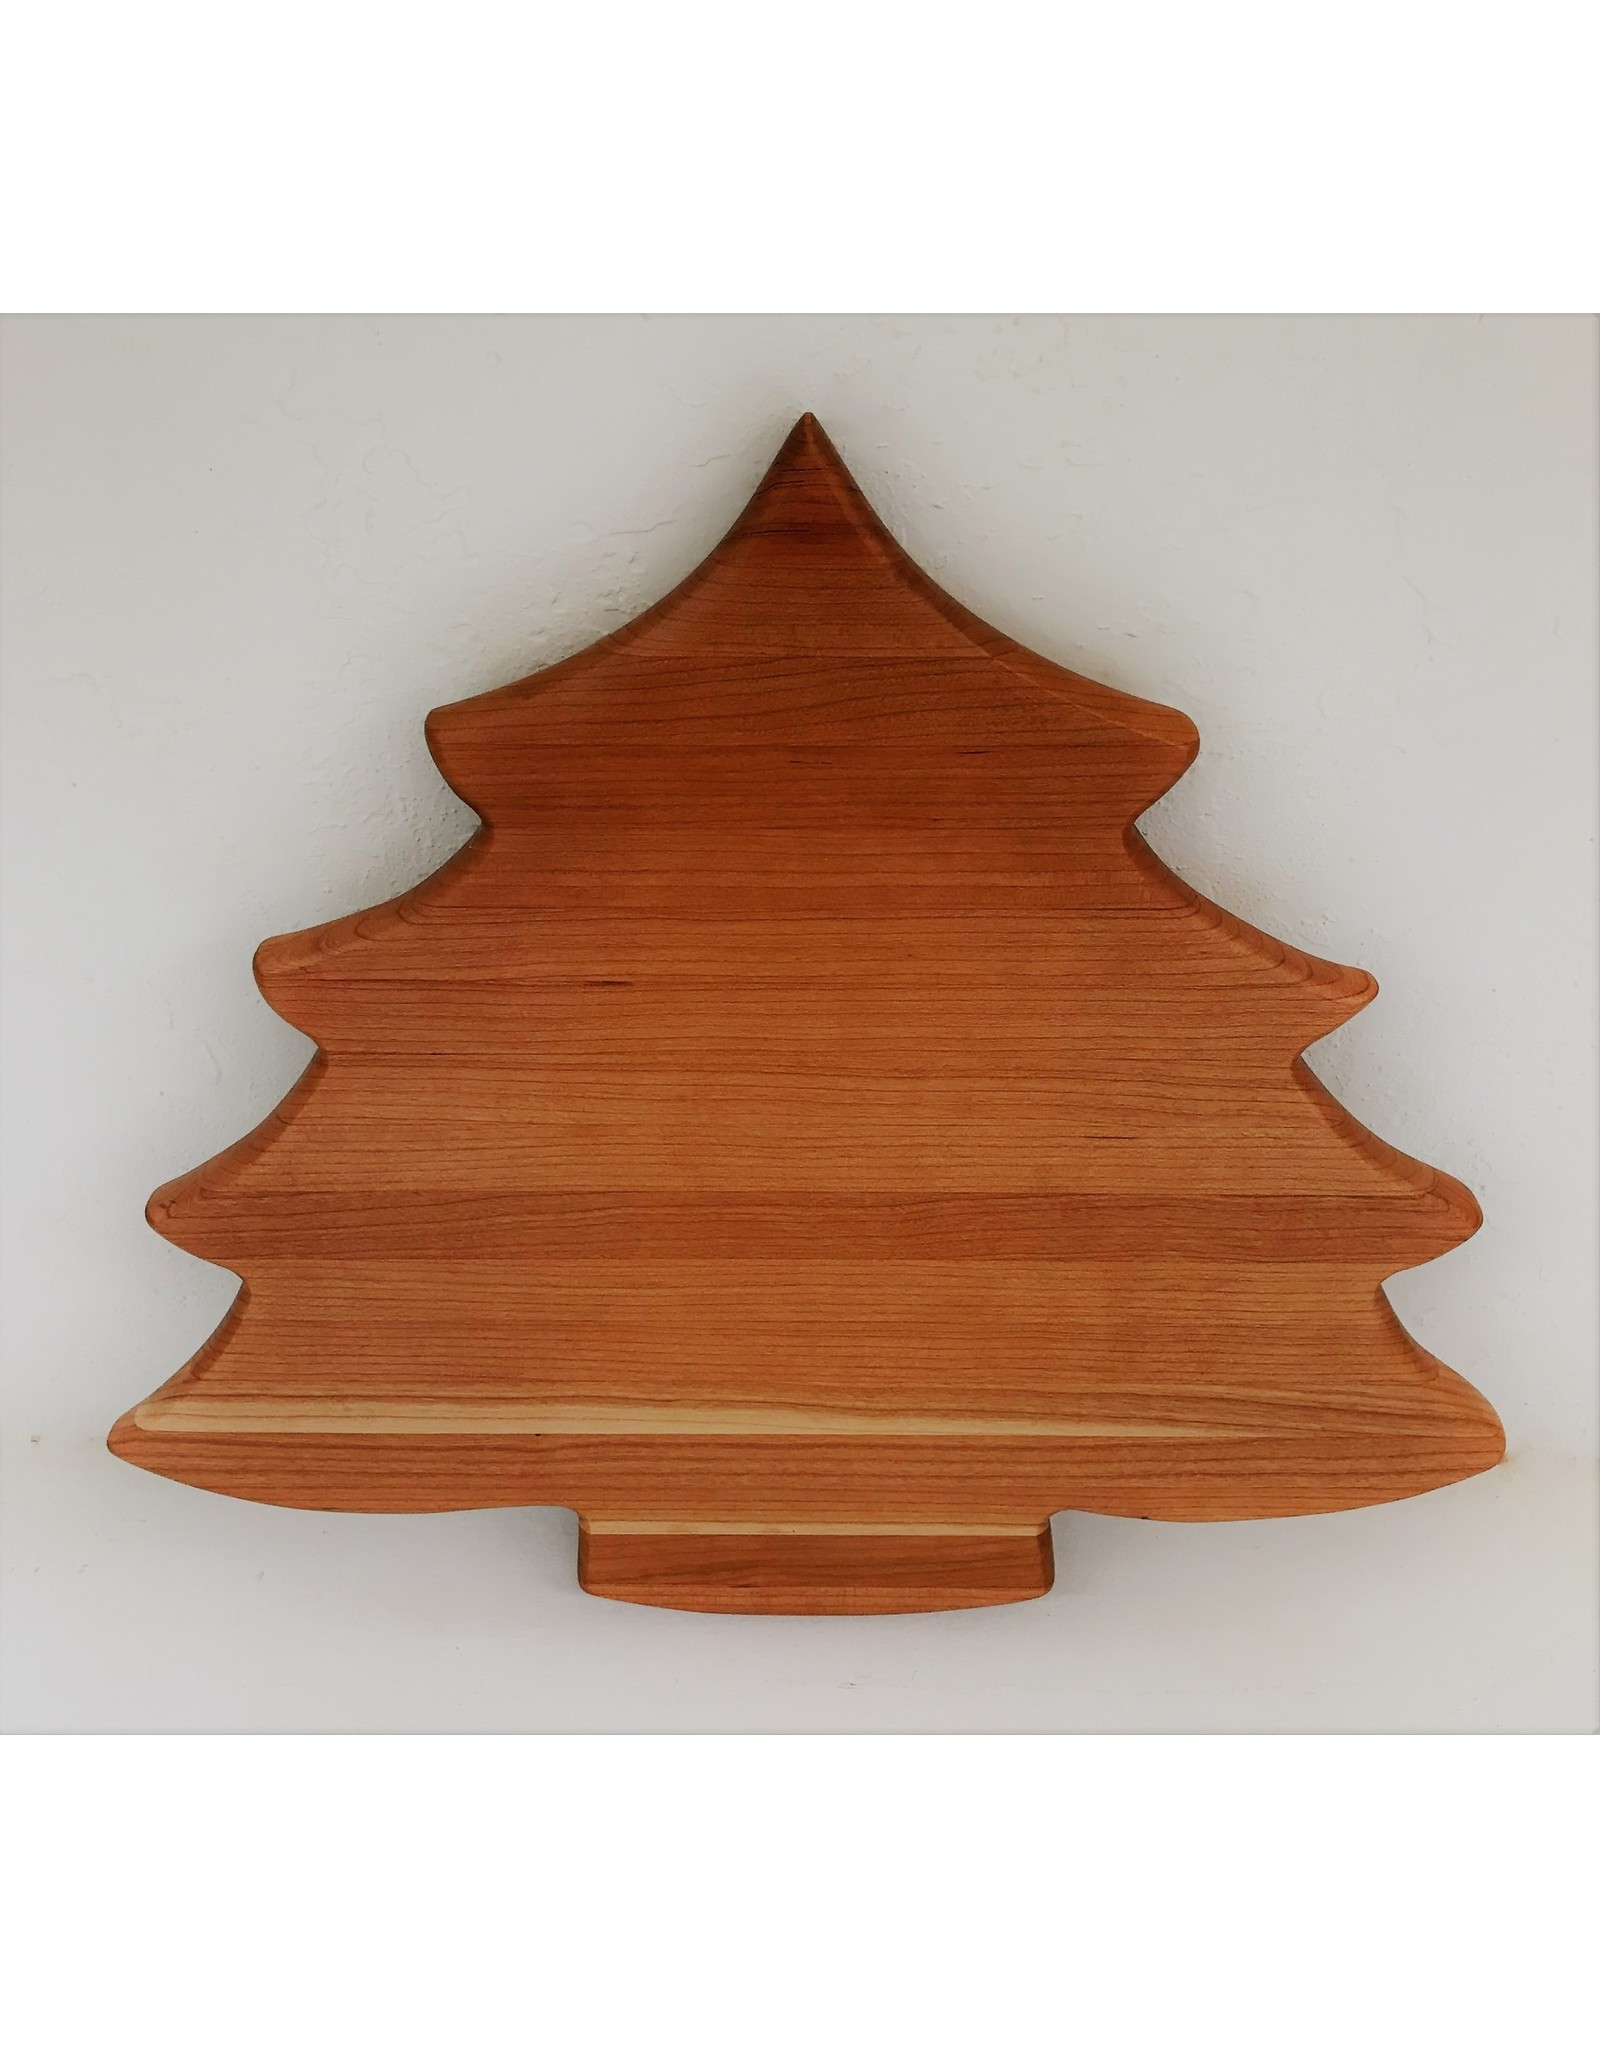 Richard Rose Culinary Christmas Tree Edge Grain Board